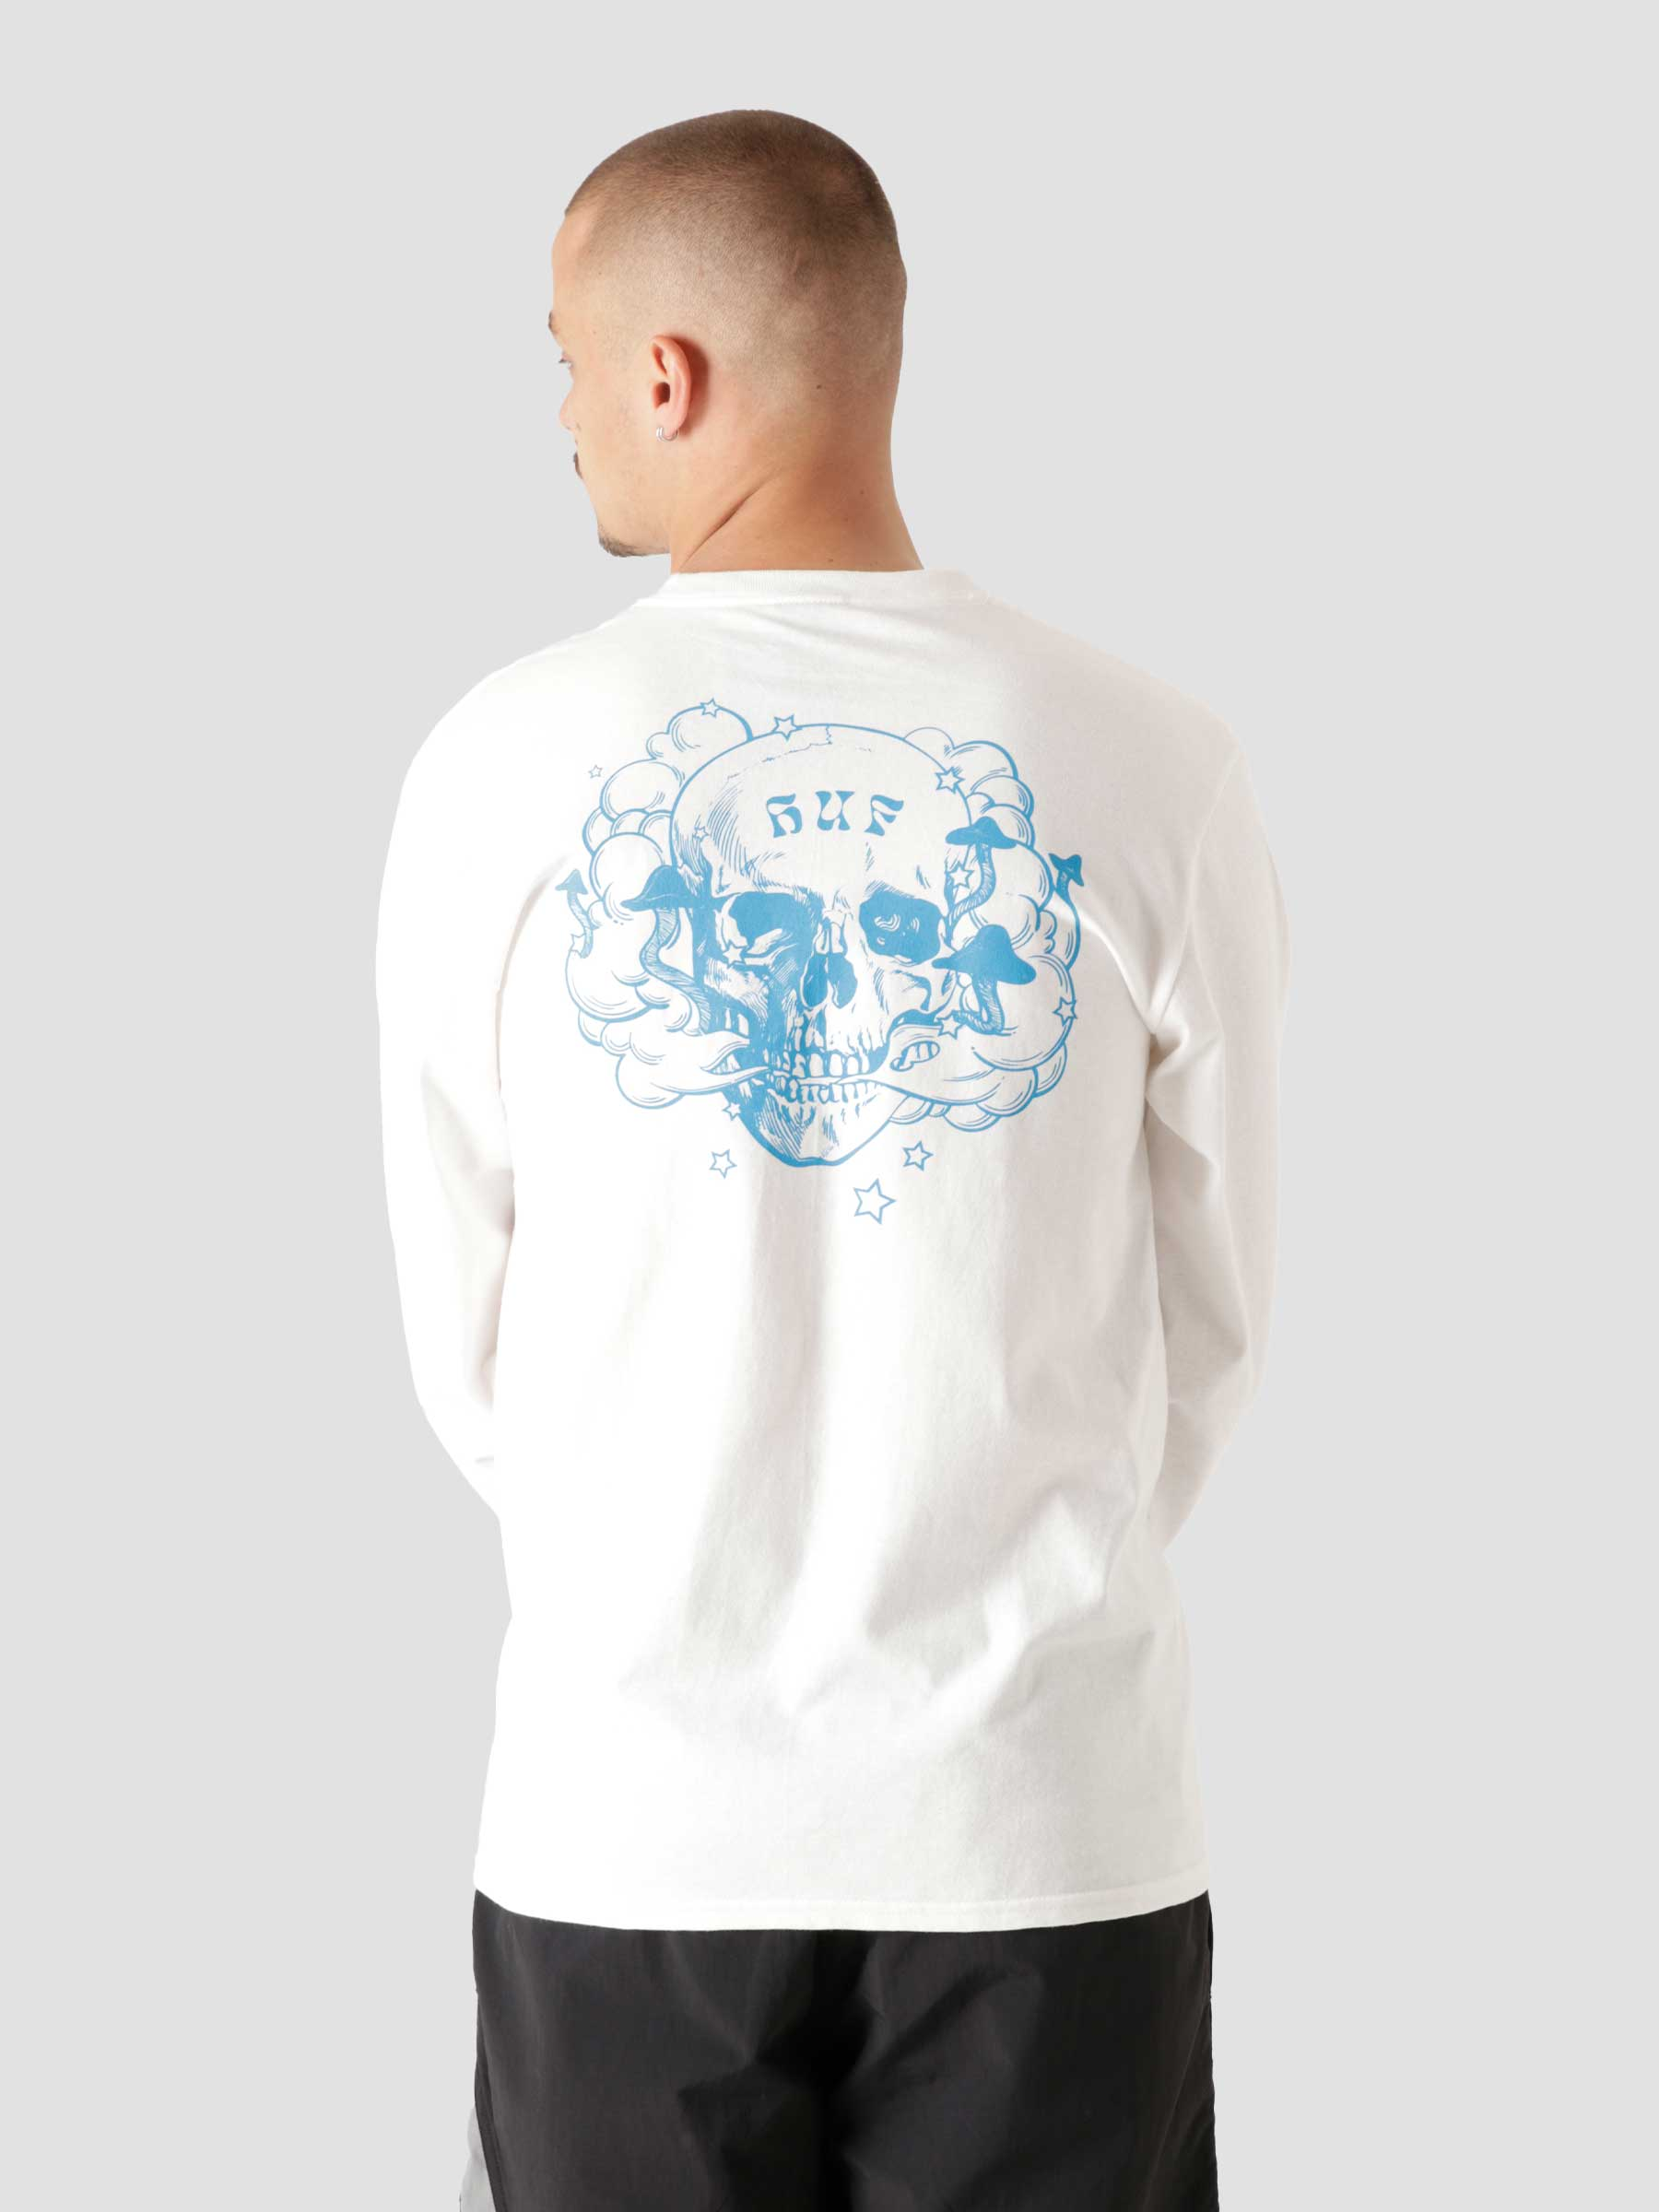 Gratefully Yours L/S Tee White TS01477